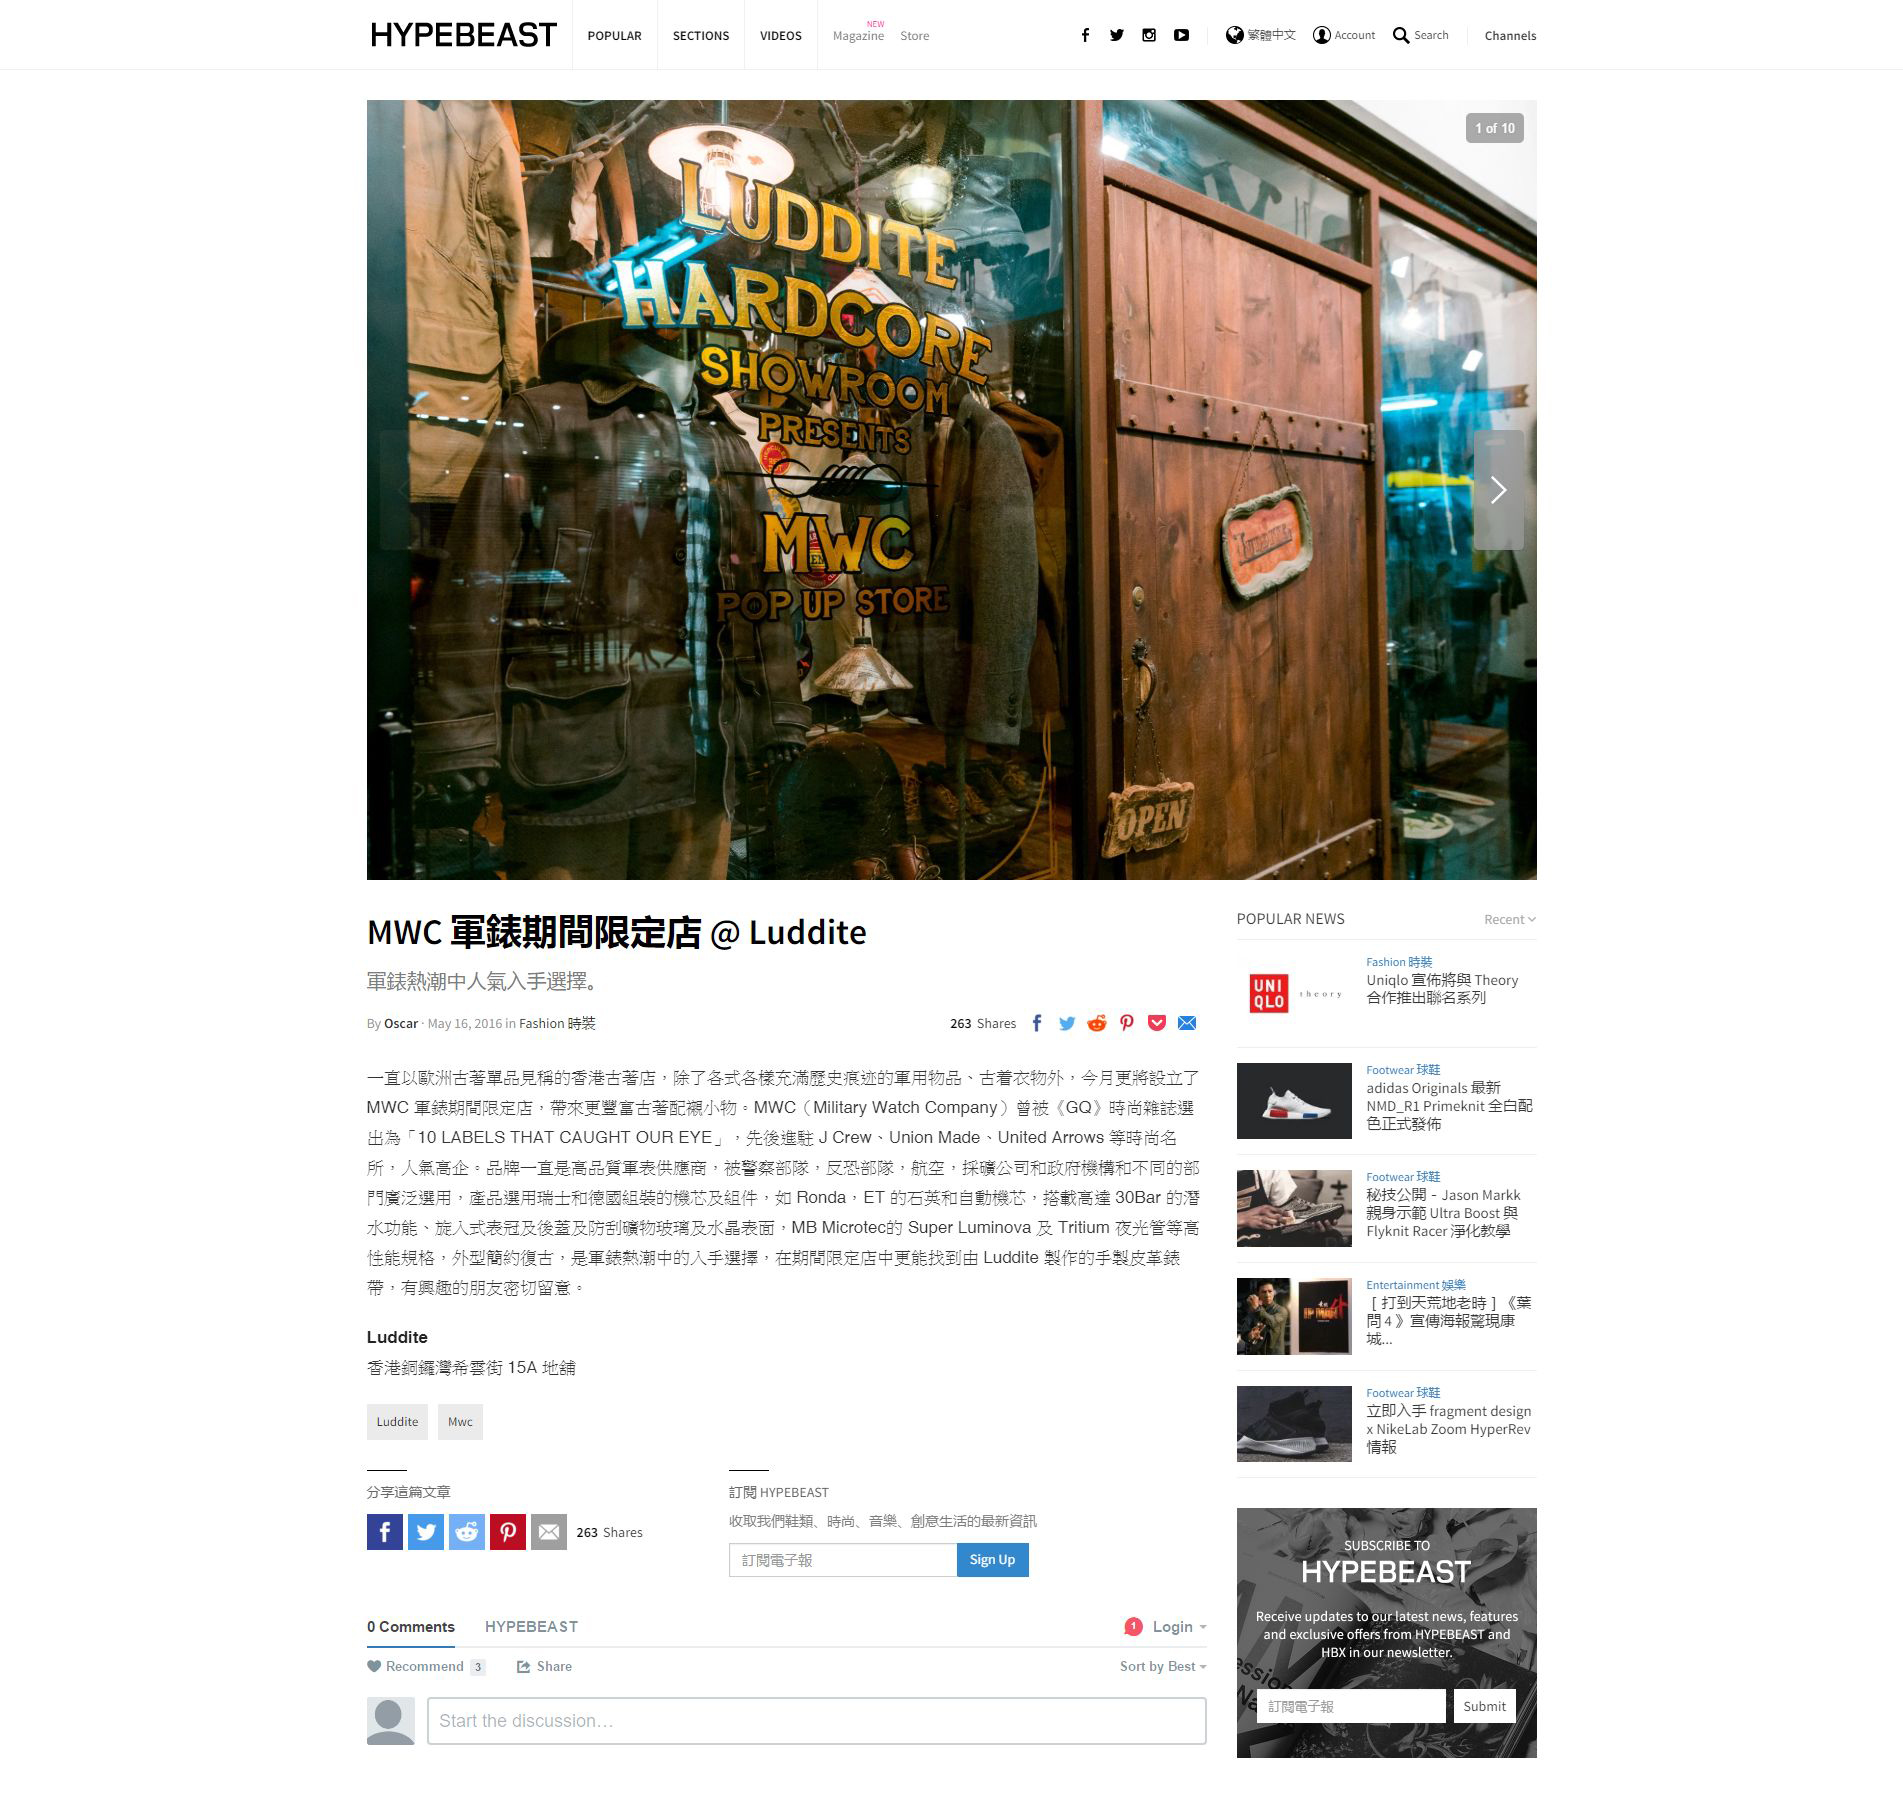 FireShot Screen Capture #034 - 'MWC 軍錶期間限定店 _ Luddite I HYPEBEAST' - hk_hypebeast_com_2016_5_mwc-lud